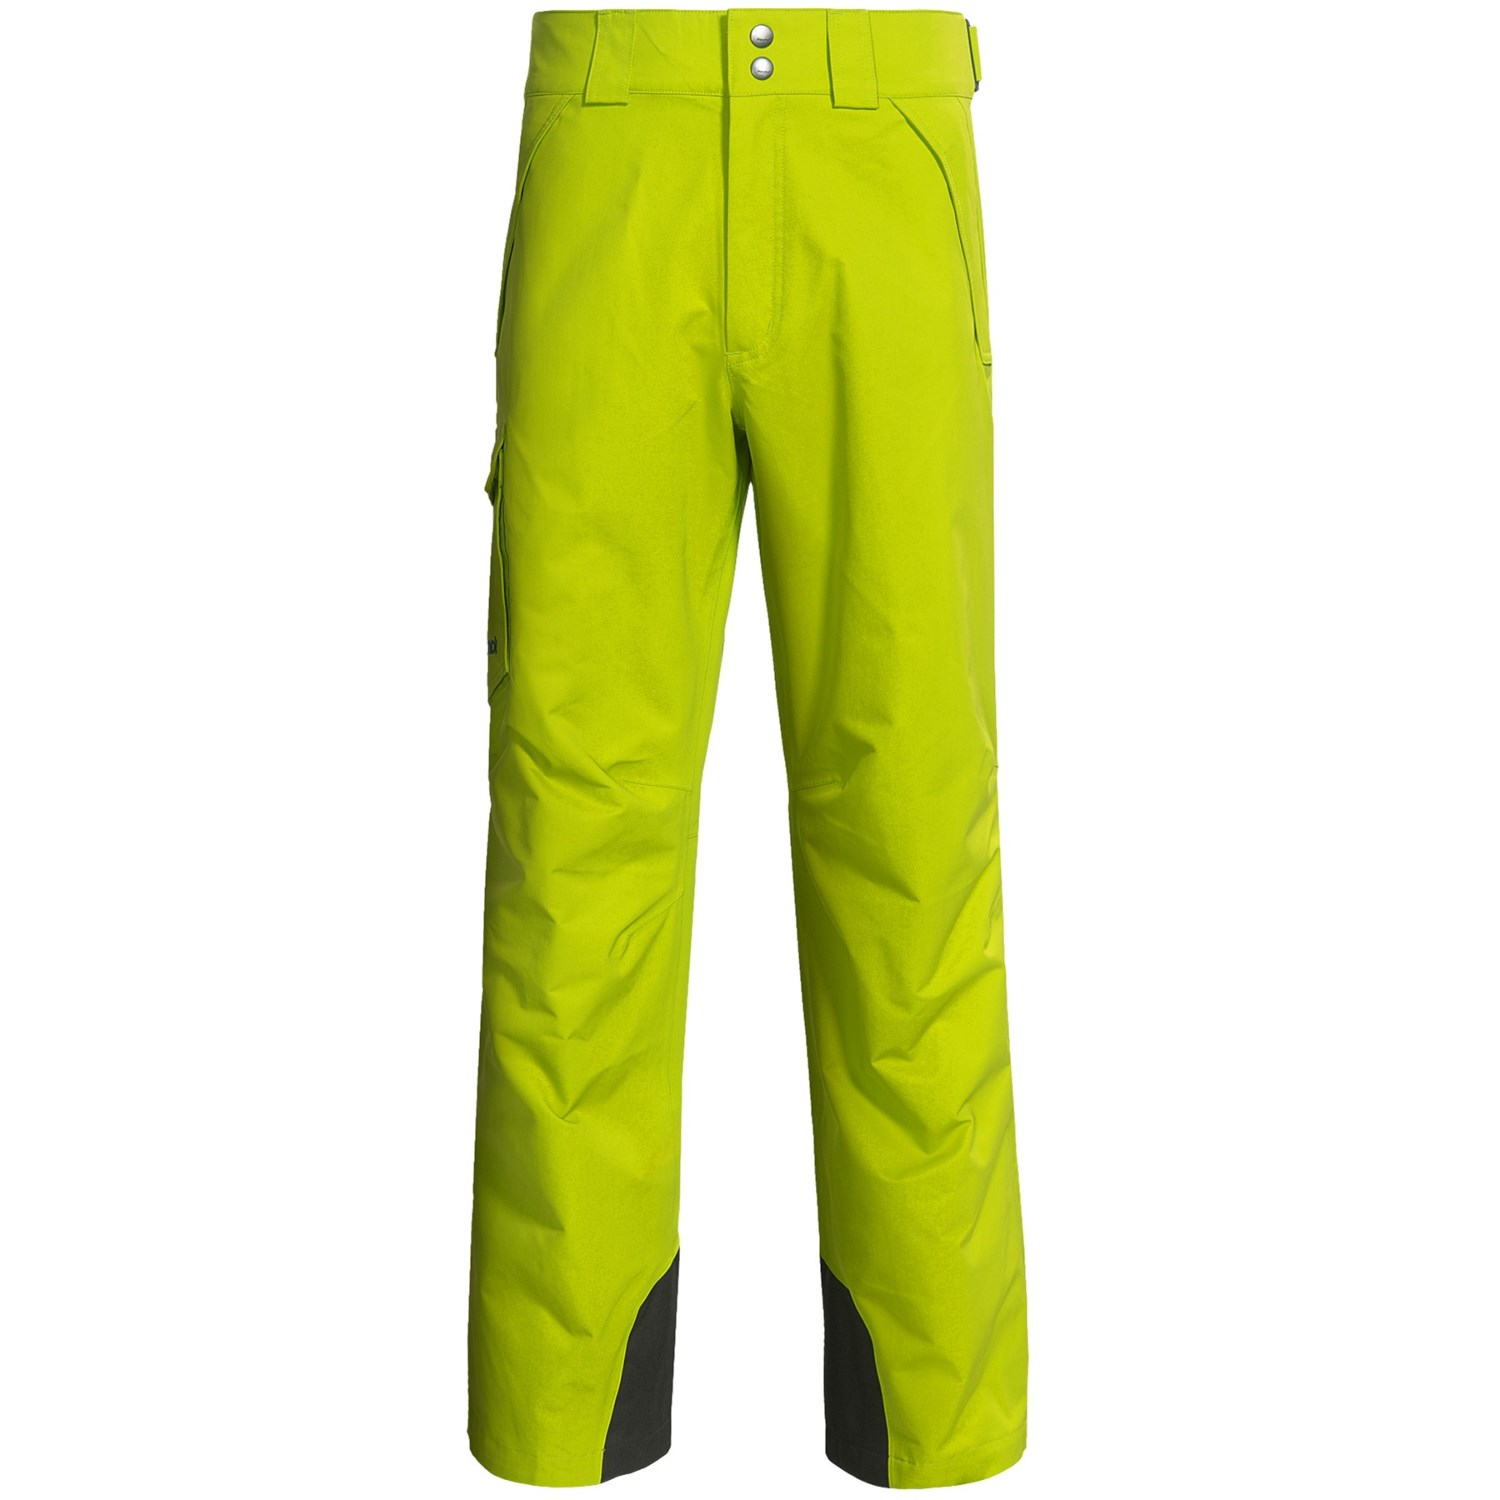 Lastest Find This Pin And More On Items Id Love To Have Take A Look At This Lime Green Funky Moose Yoga Pants  Women By Lazy One On Today! This Pair Fits Like A Dream Thanks To Their Lightweight, Roomy Cotton And Easy Elastic Waistband